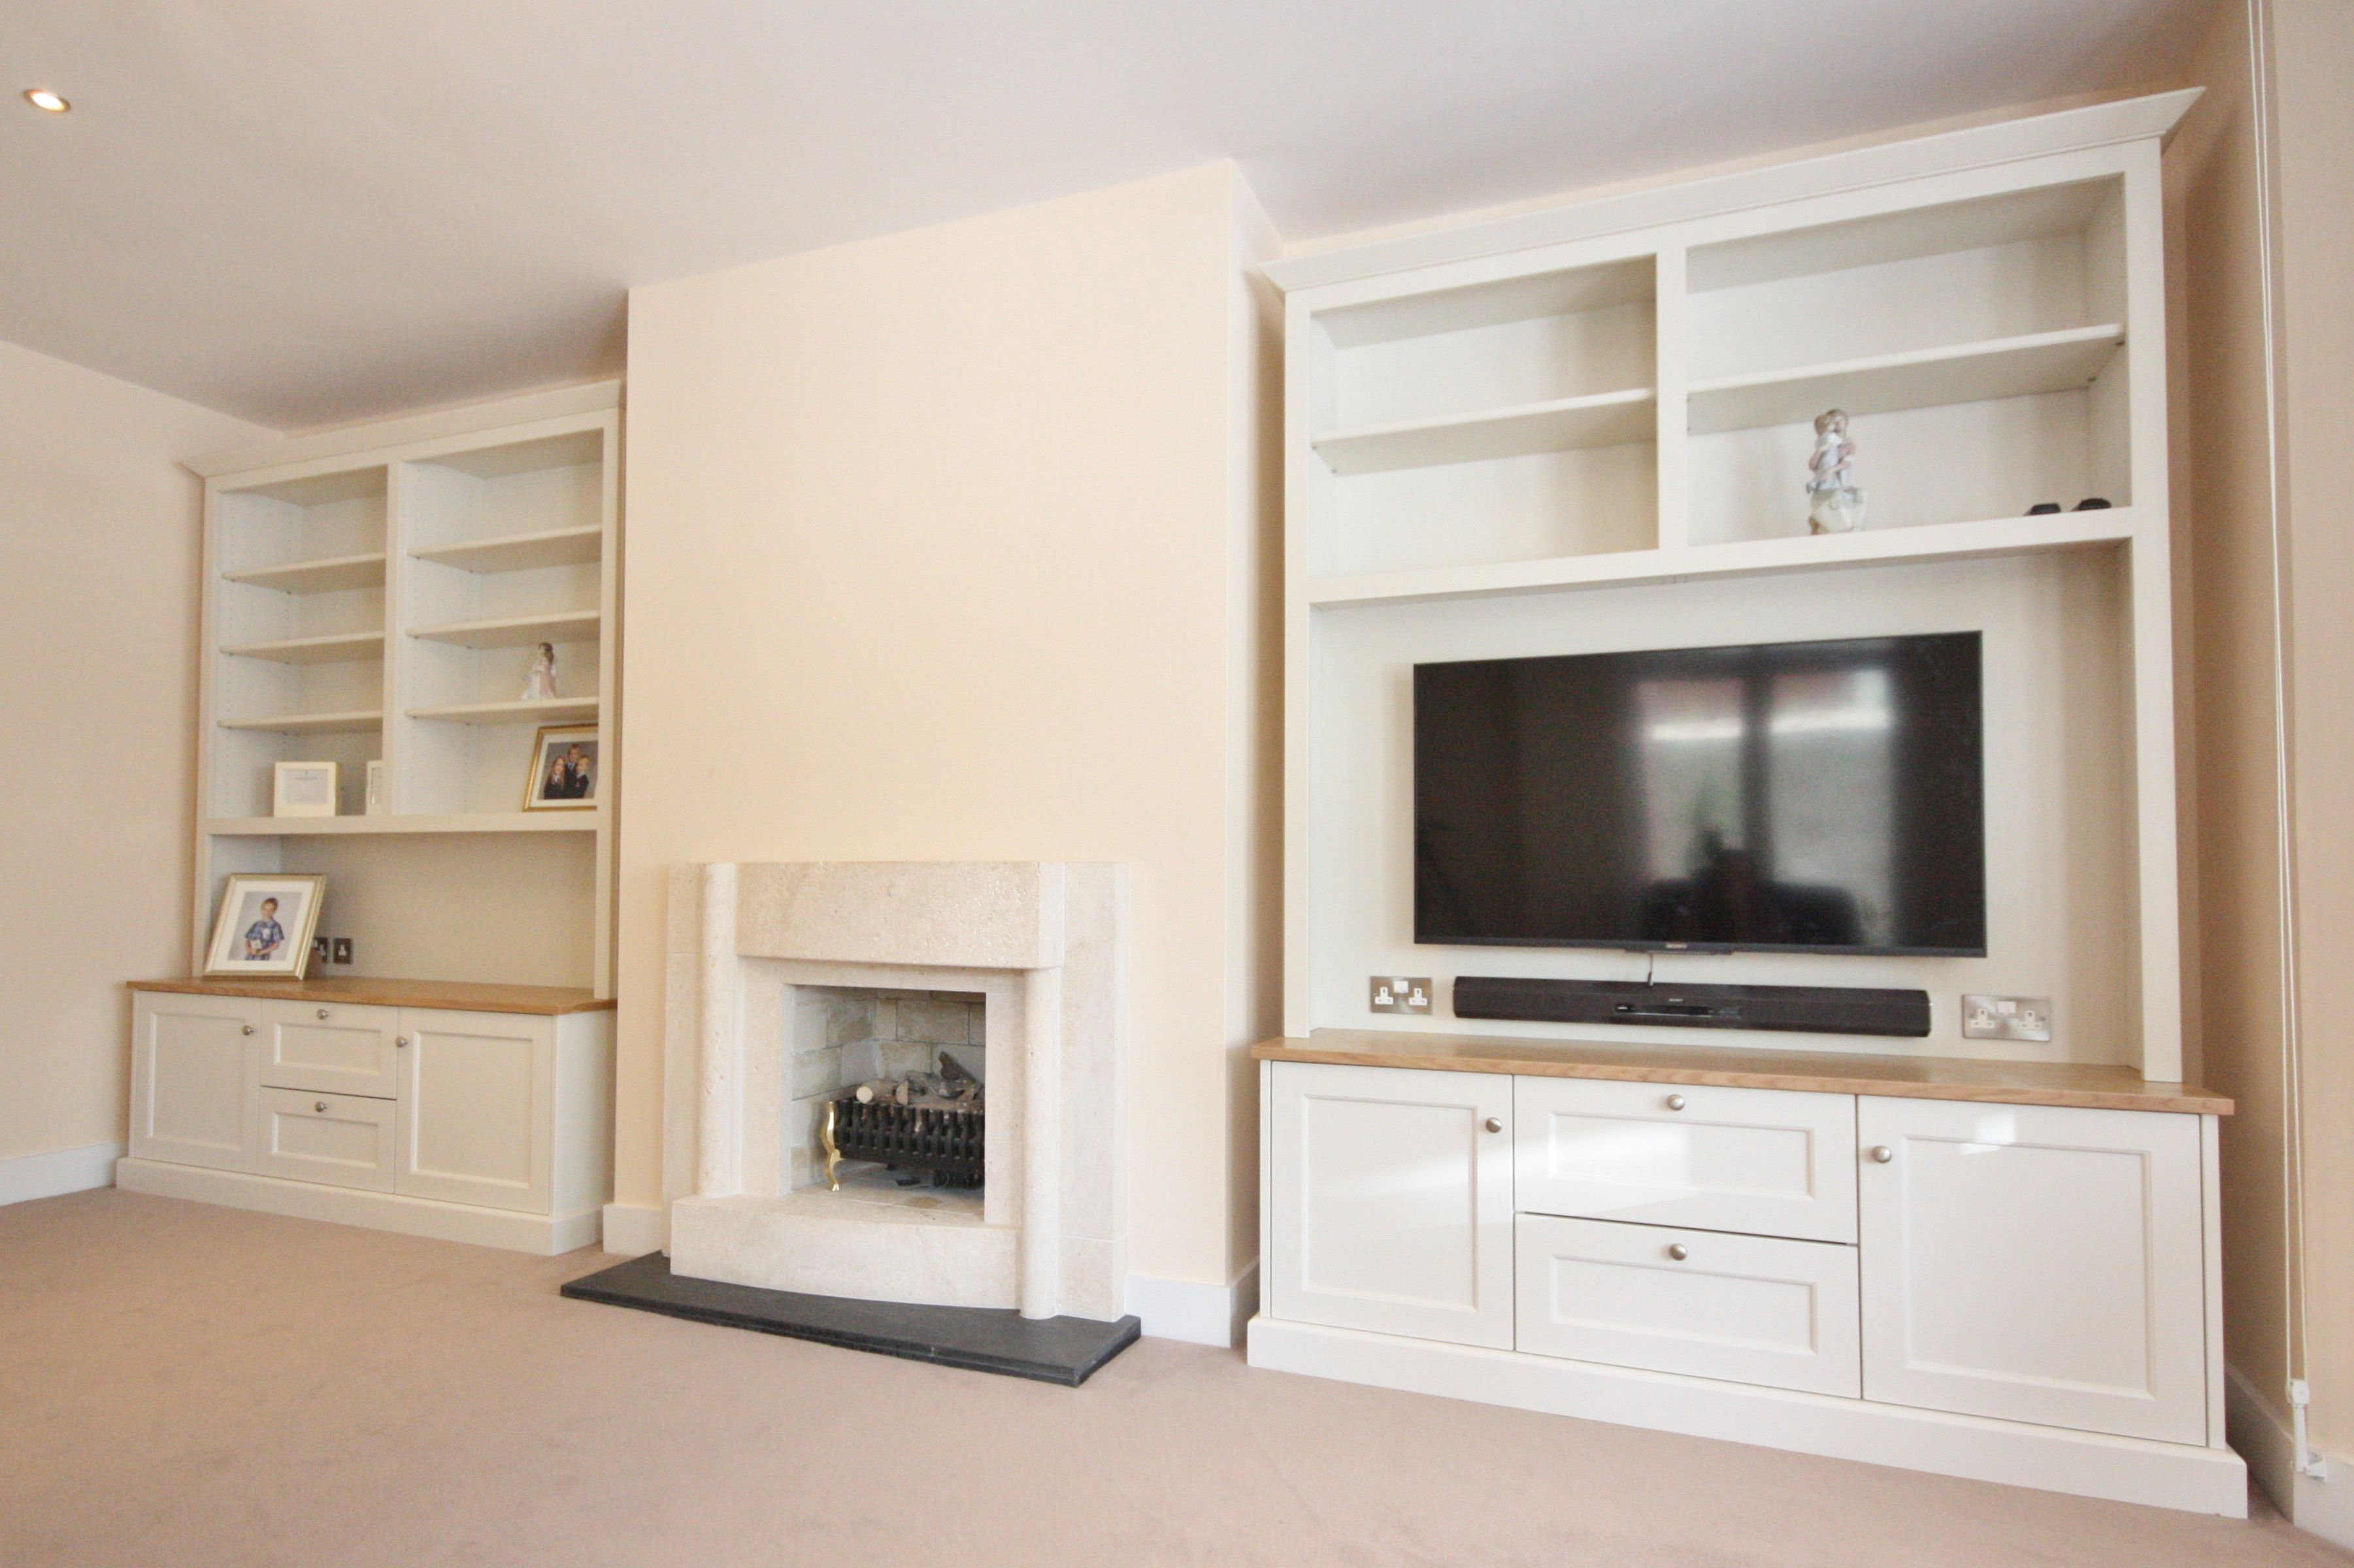 image result for bookshelves and tv cabinet on side of fireplace